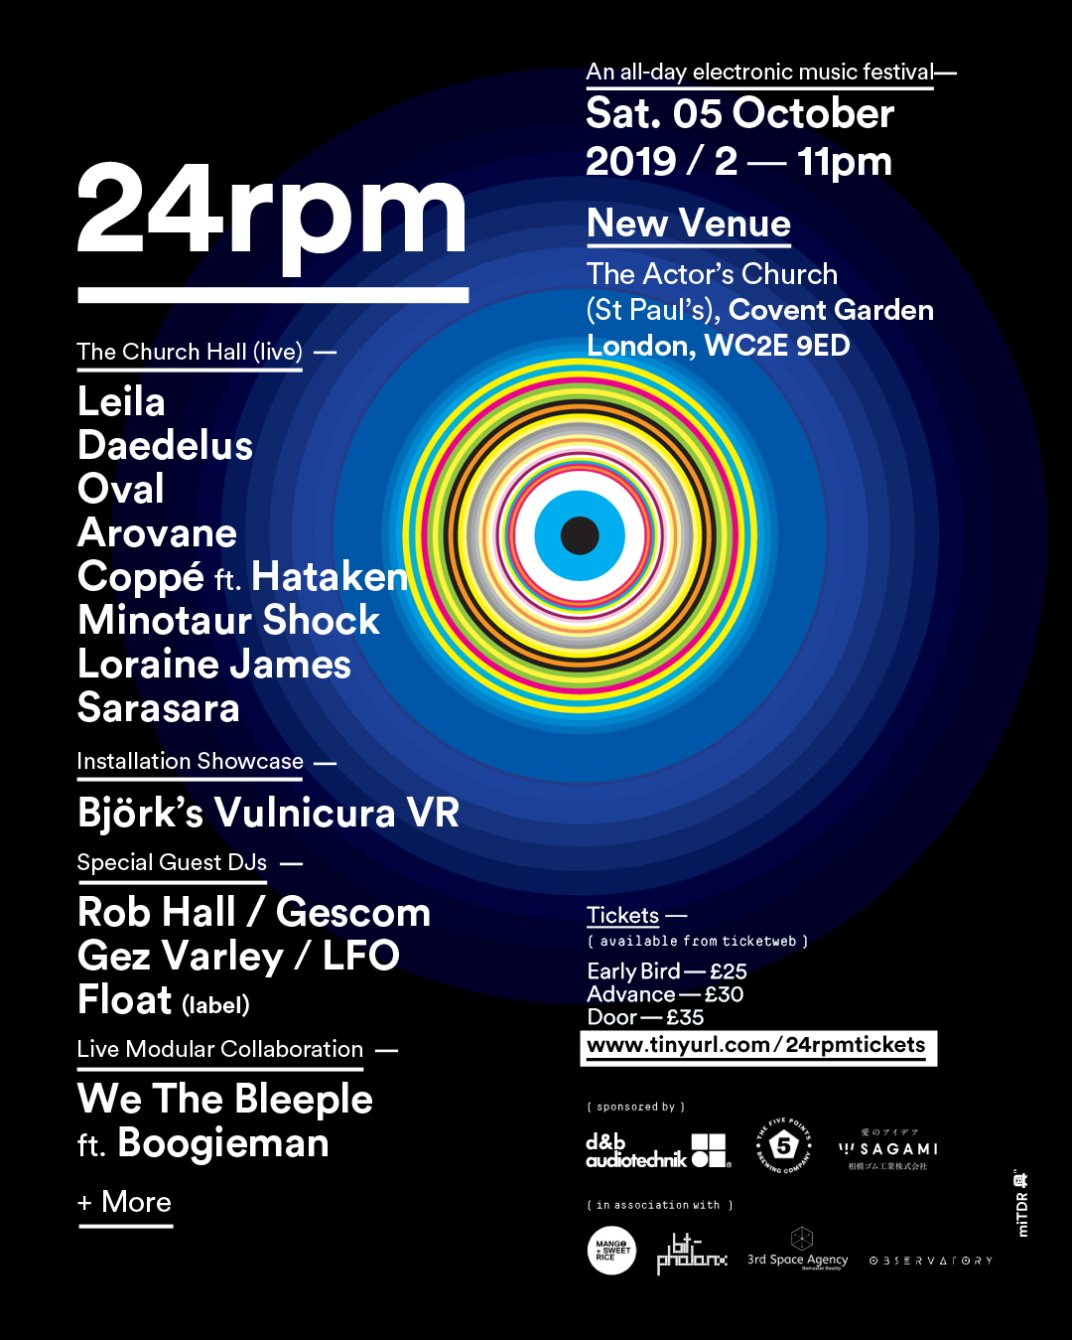 24rpm: An All-Day Electronic Music Festival - Flyer back